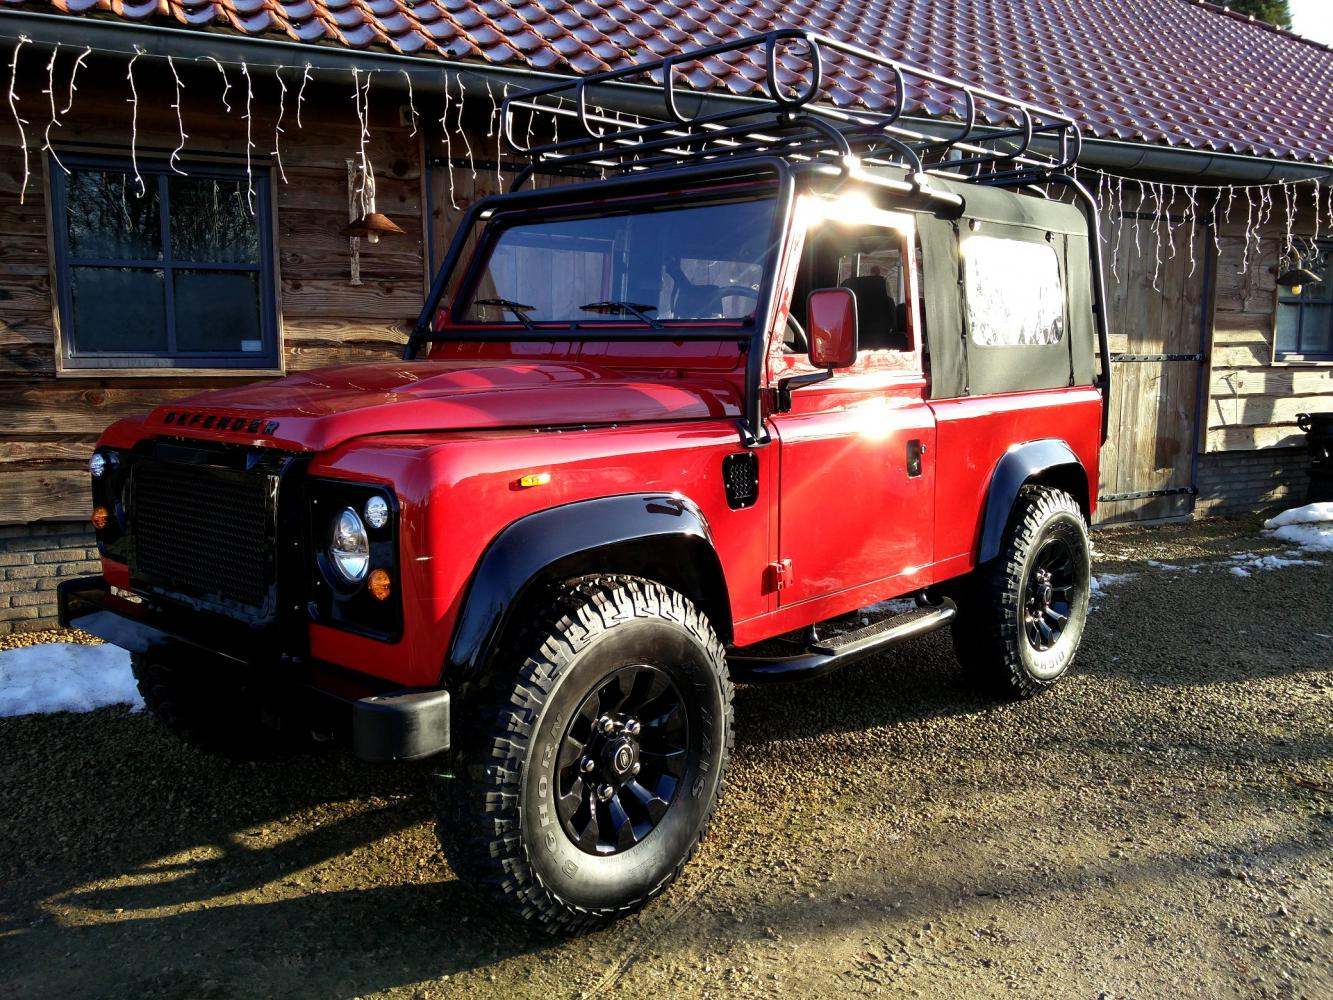 Click image for larger version  Name:1992 LR LHD Defender 90 Red 200 Tdi A ready left front.jpg Views:16 Size:313.5 KB ID:359937